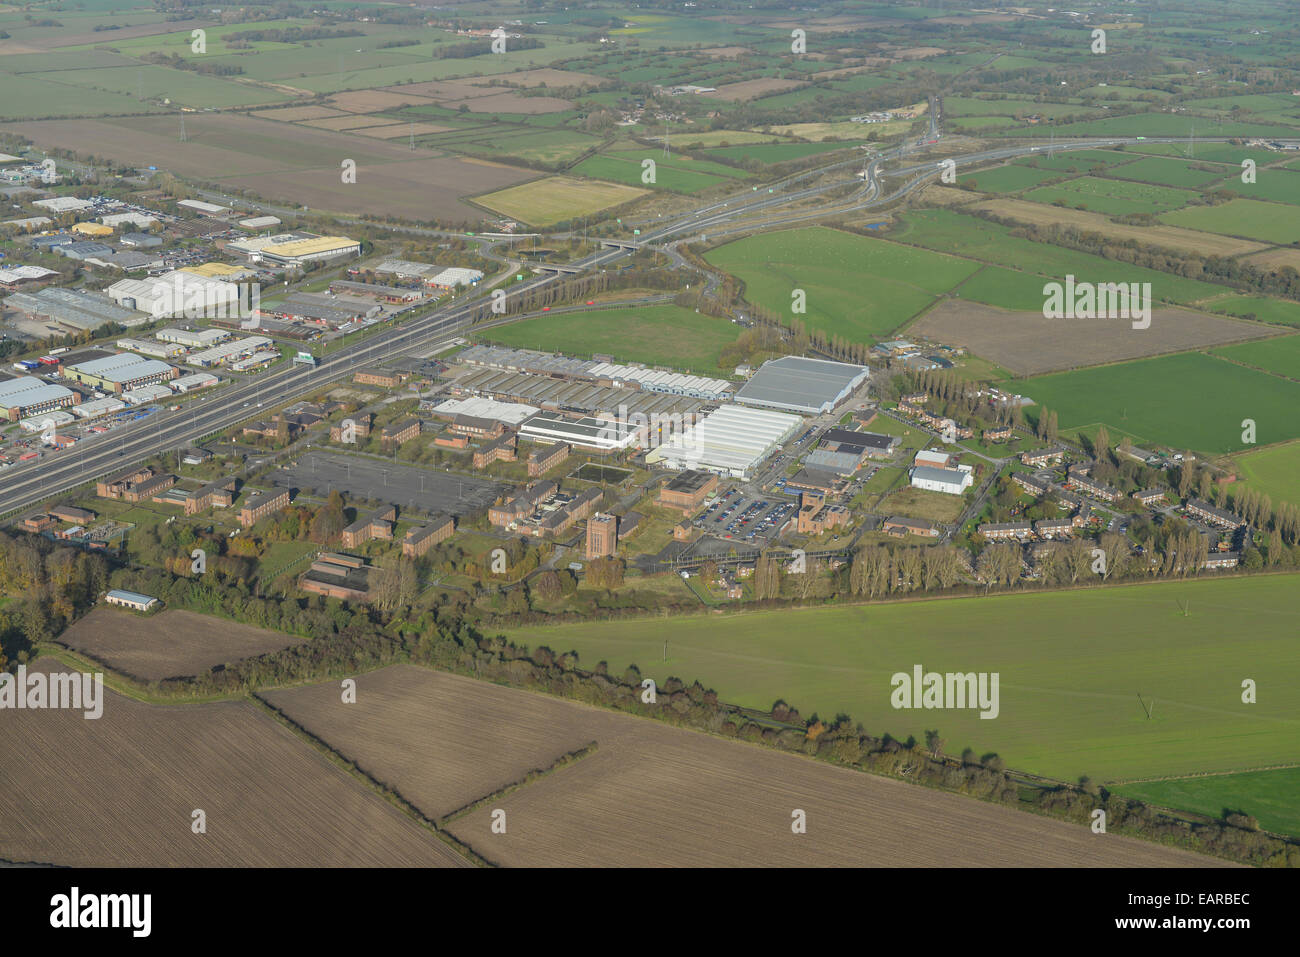 An aerial view of MOD Sealand, former RAF Sealand in Flintshire - Stock Image